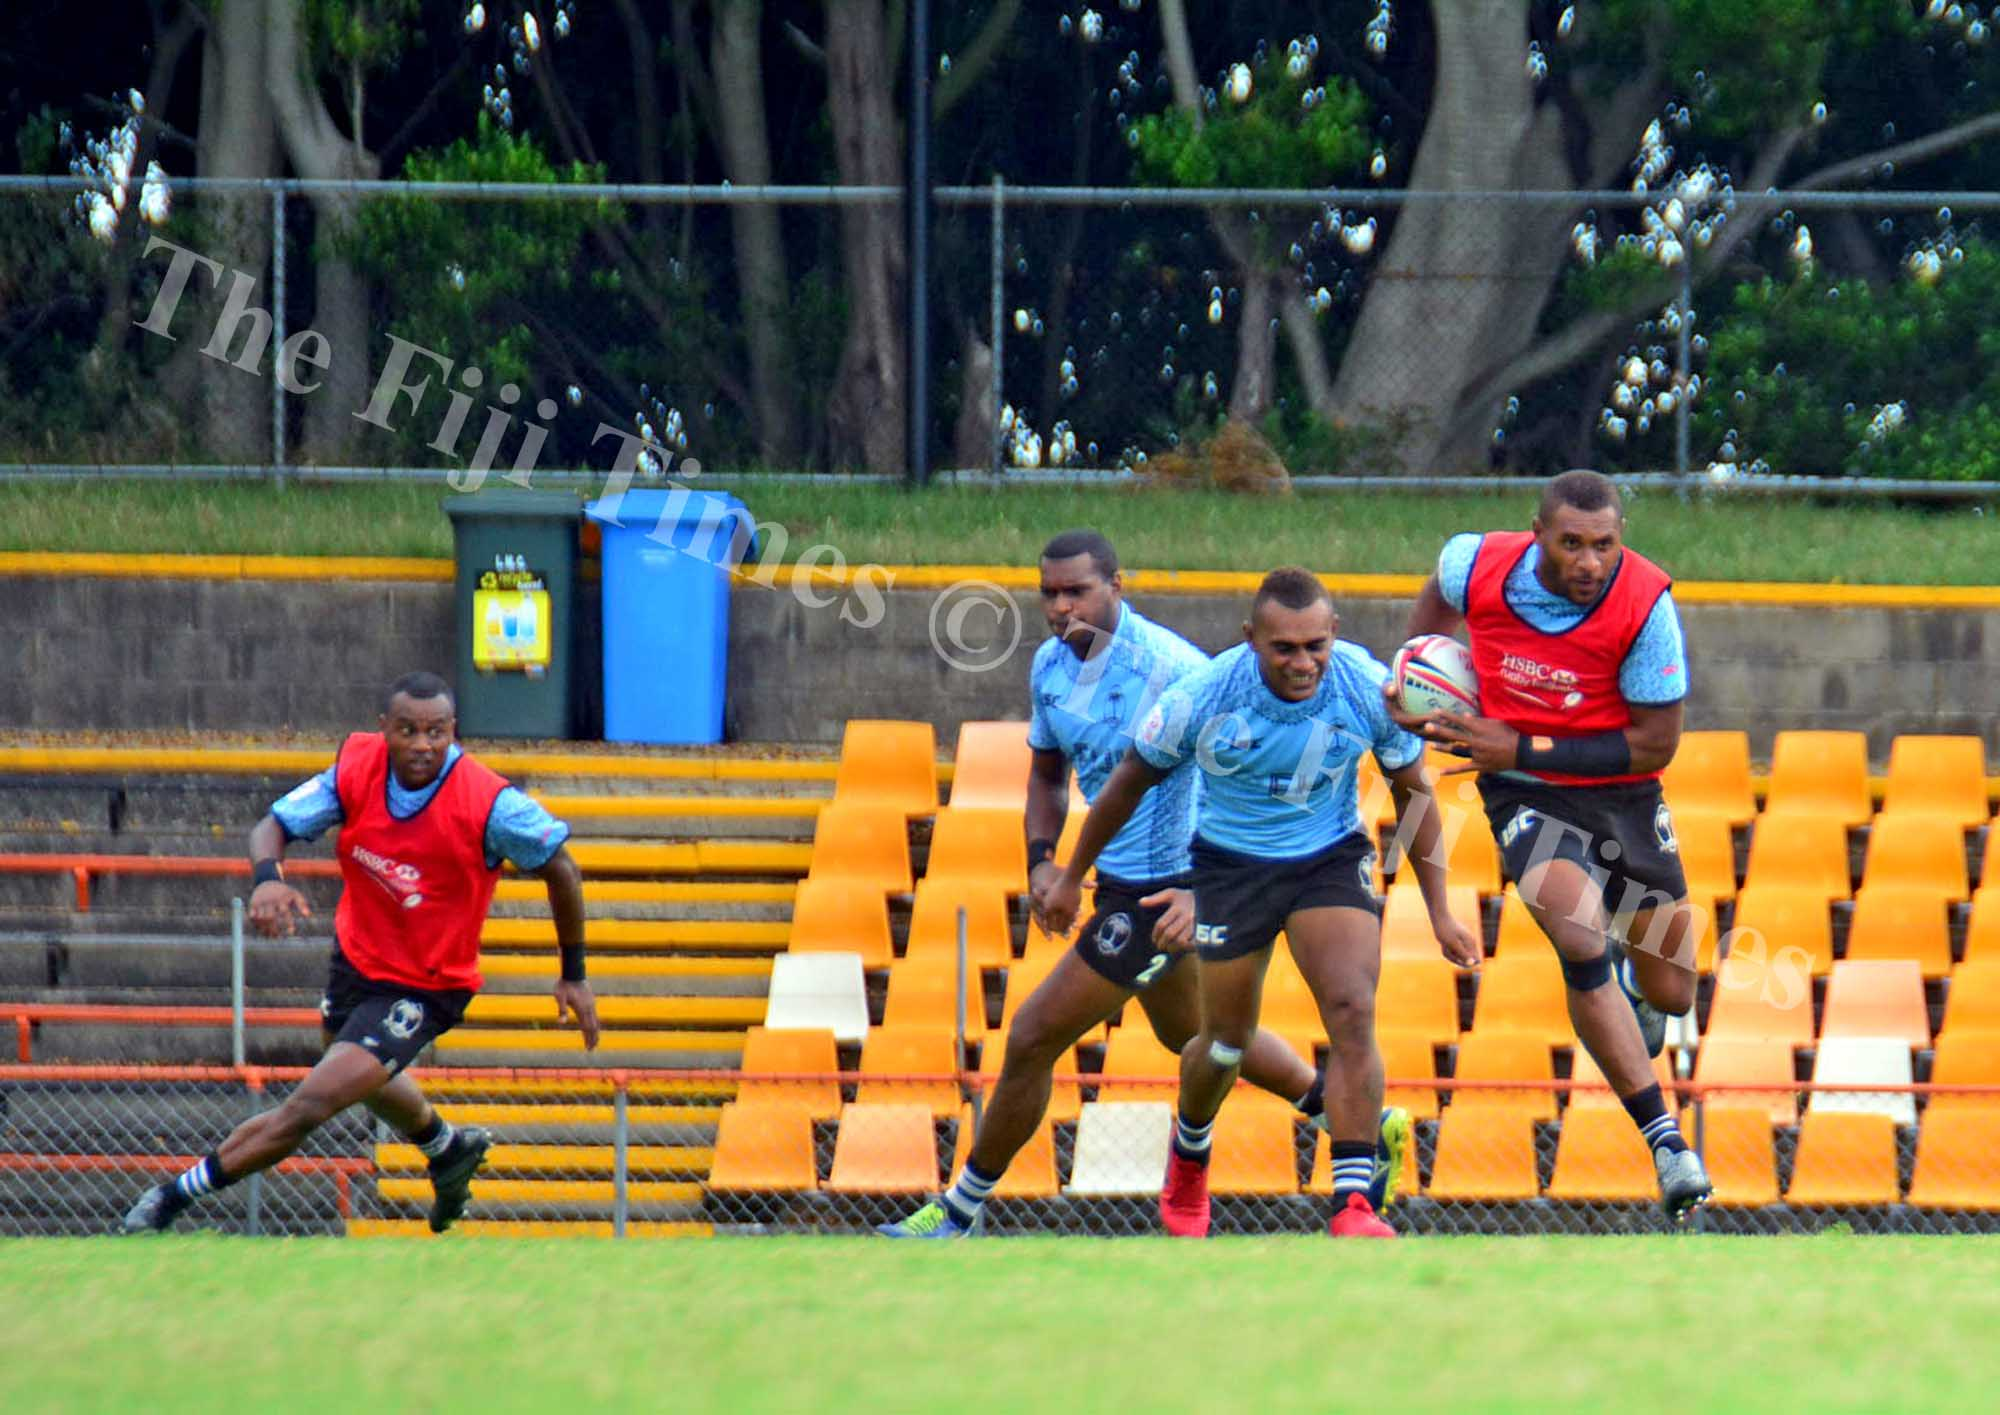 Jasa Veremalua breaks the line of defence during the Fiji Airways Fiji 7s team training at the Leichhardt Oval ground in Sydney, Australia on Thursday, January 25, 2018. Picture: JONACANI LALAKOBAU